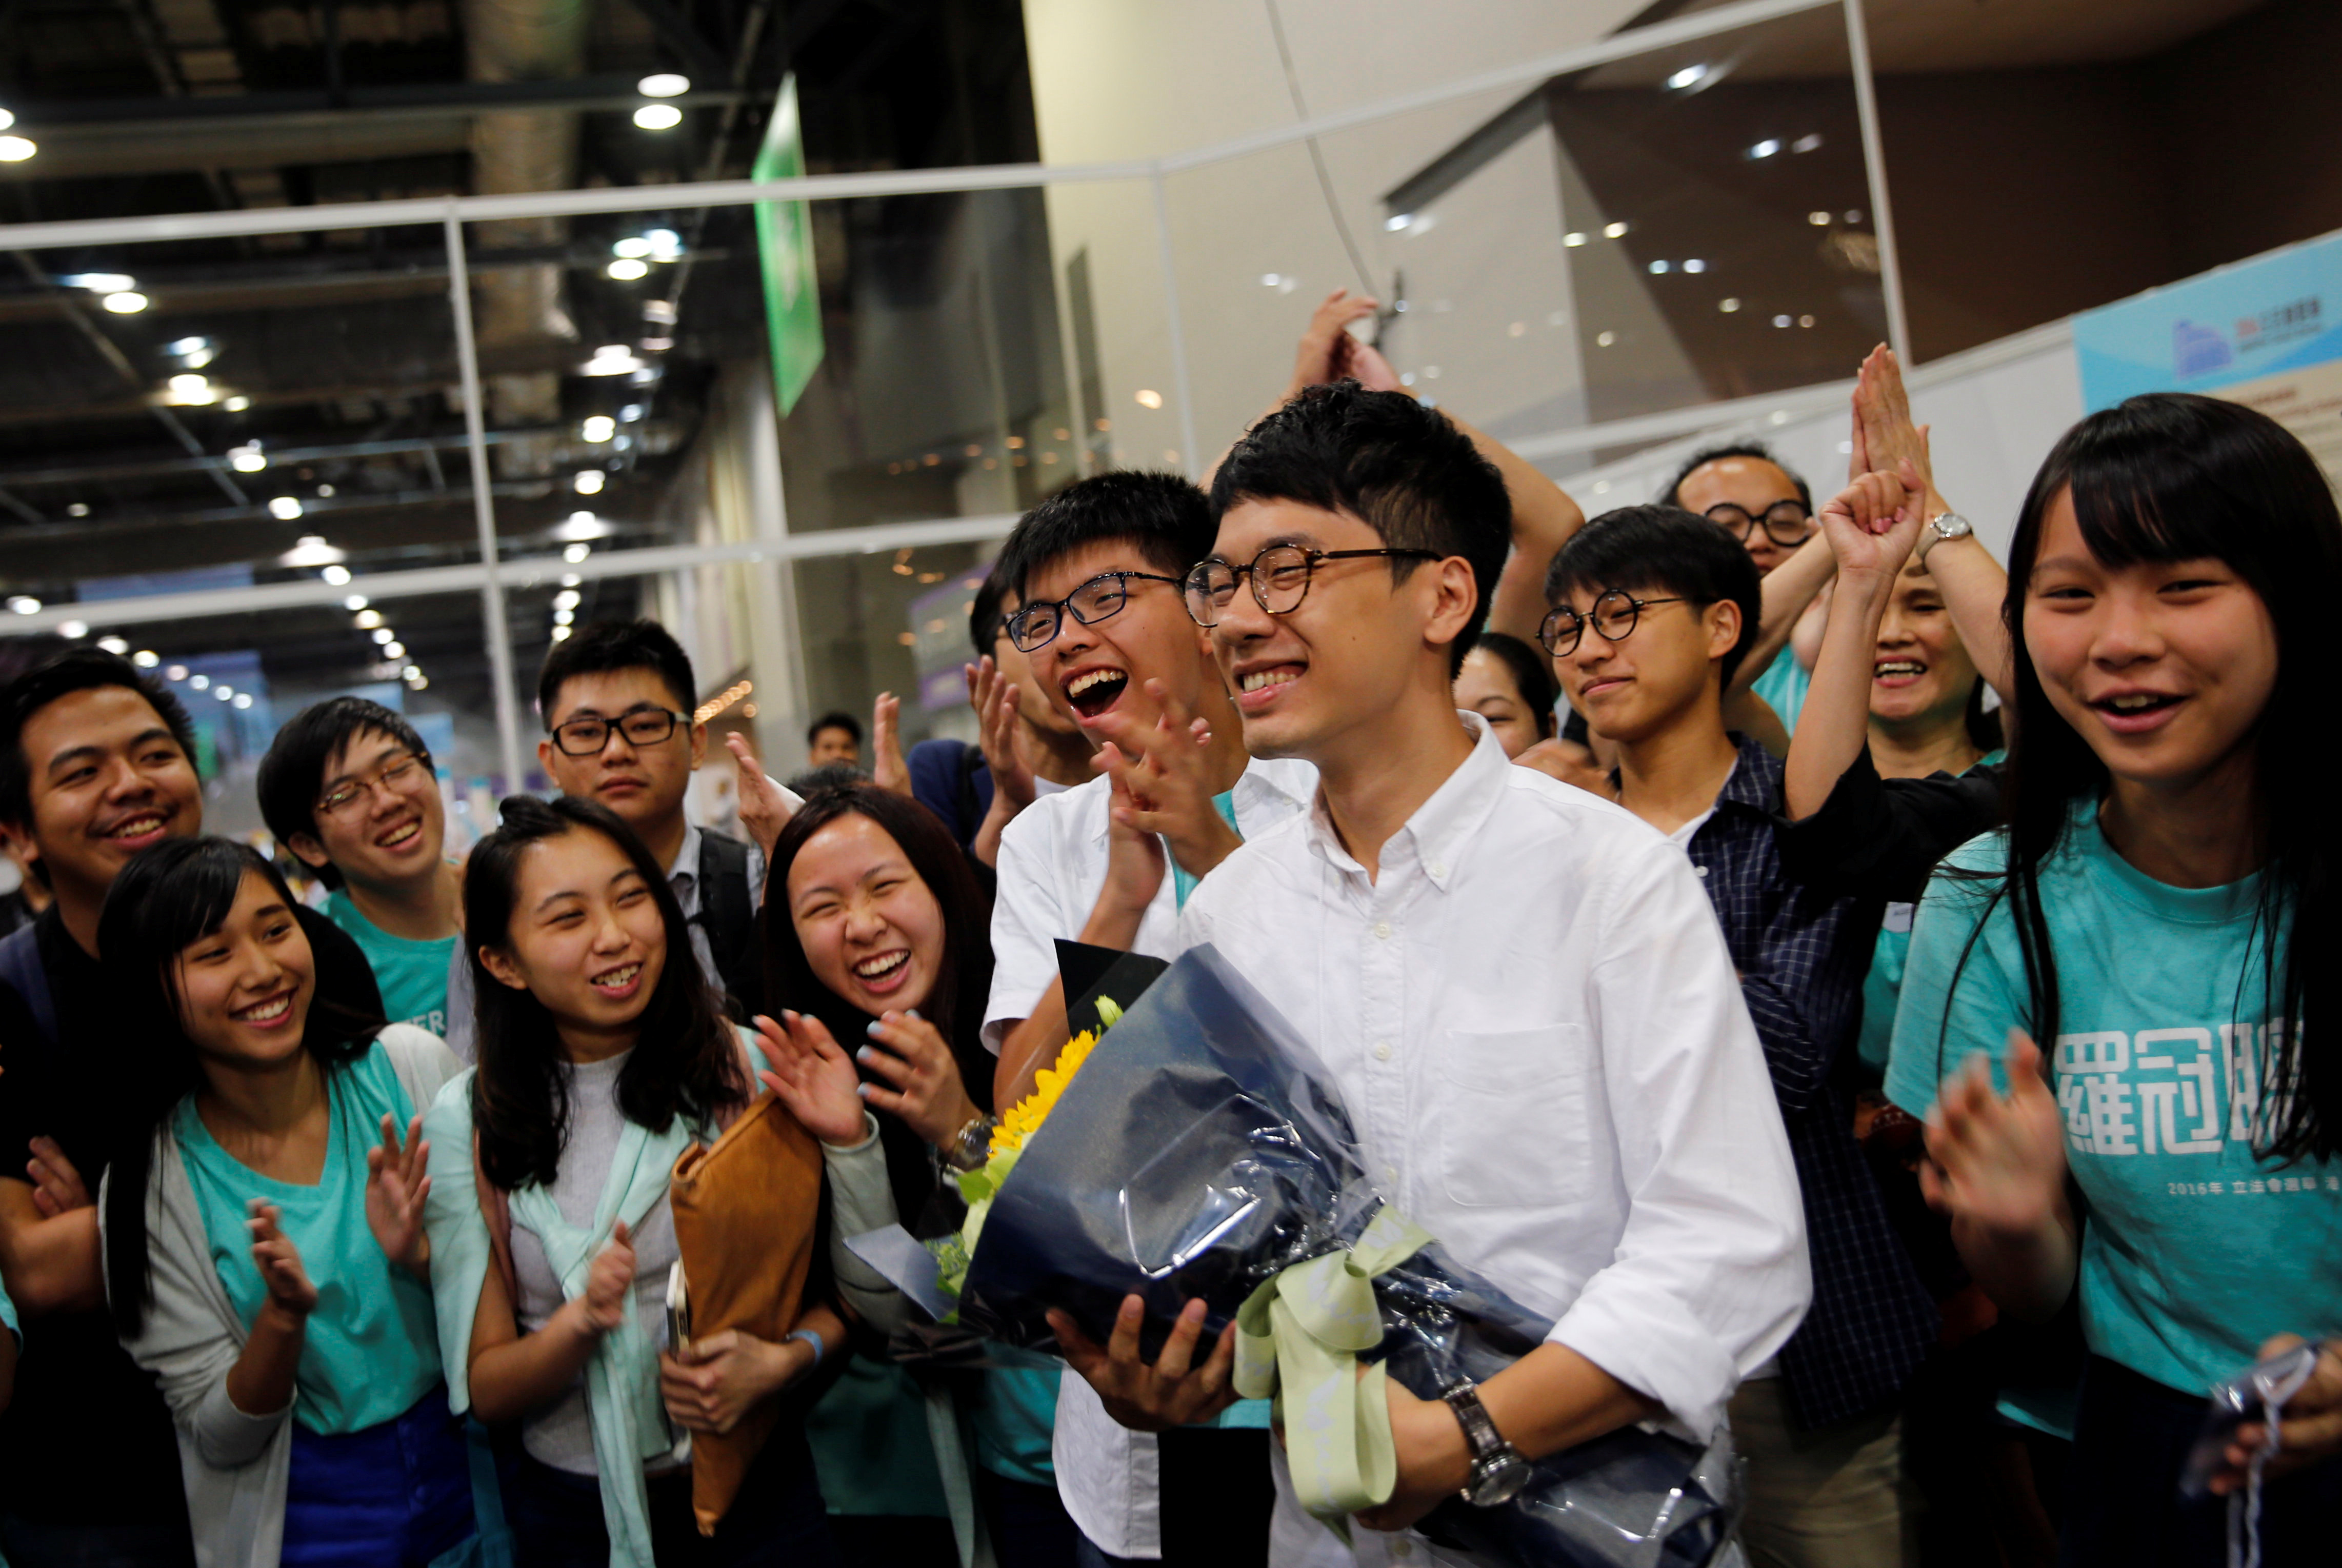 Student leader Joshua Wong (C) greets candidate Nathan Law (2nd R) as supporters share their joy after Law won in the Legislative Council election in Hong Kong, China September 5, 2016.